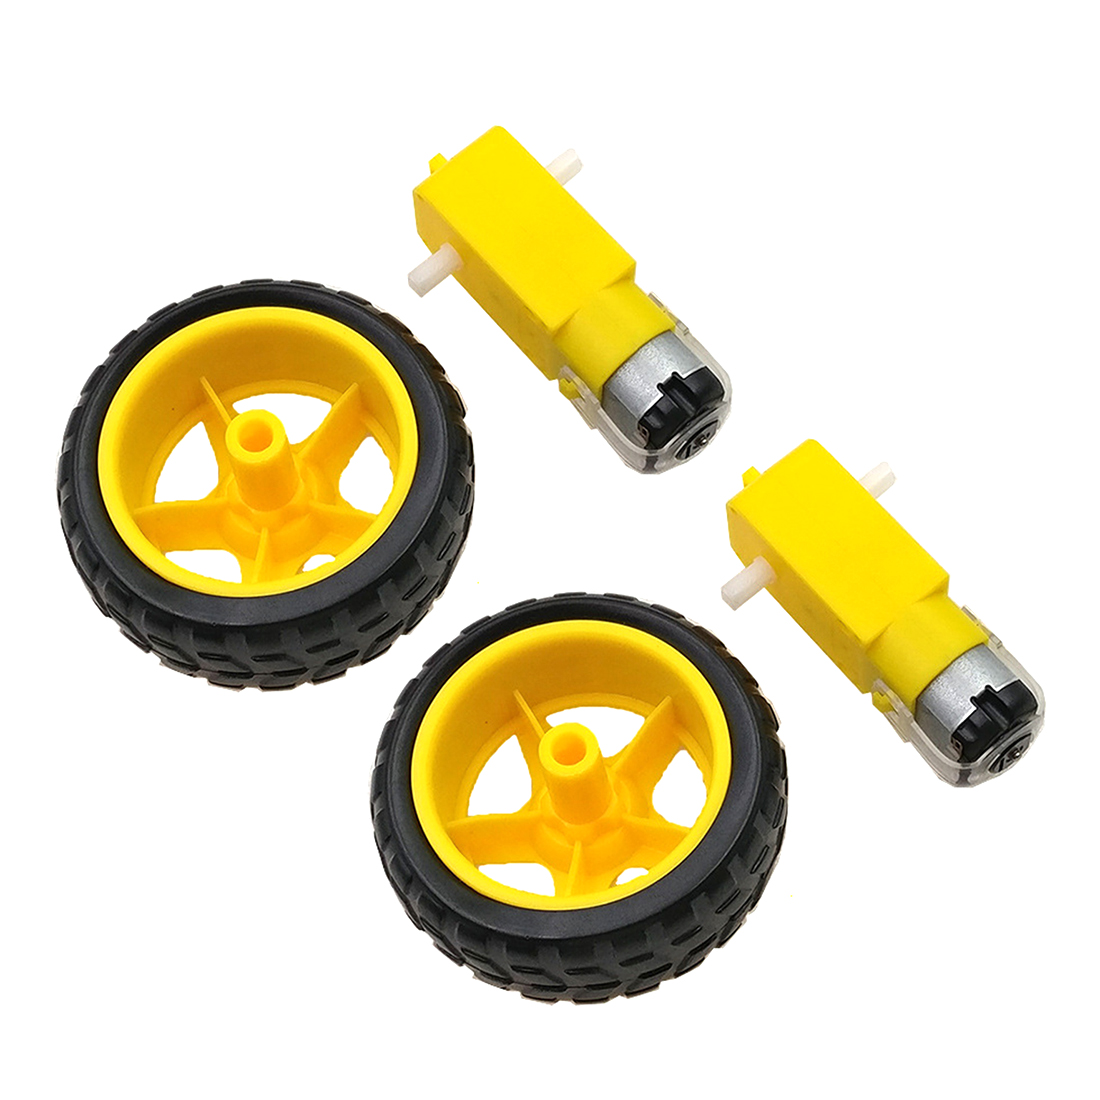 2Pcs Small Smart Car Tyres Wheel Robot Chassis Kit With DC Speed Reduction Motor Programmable Toys High Tech Toys For Children